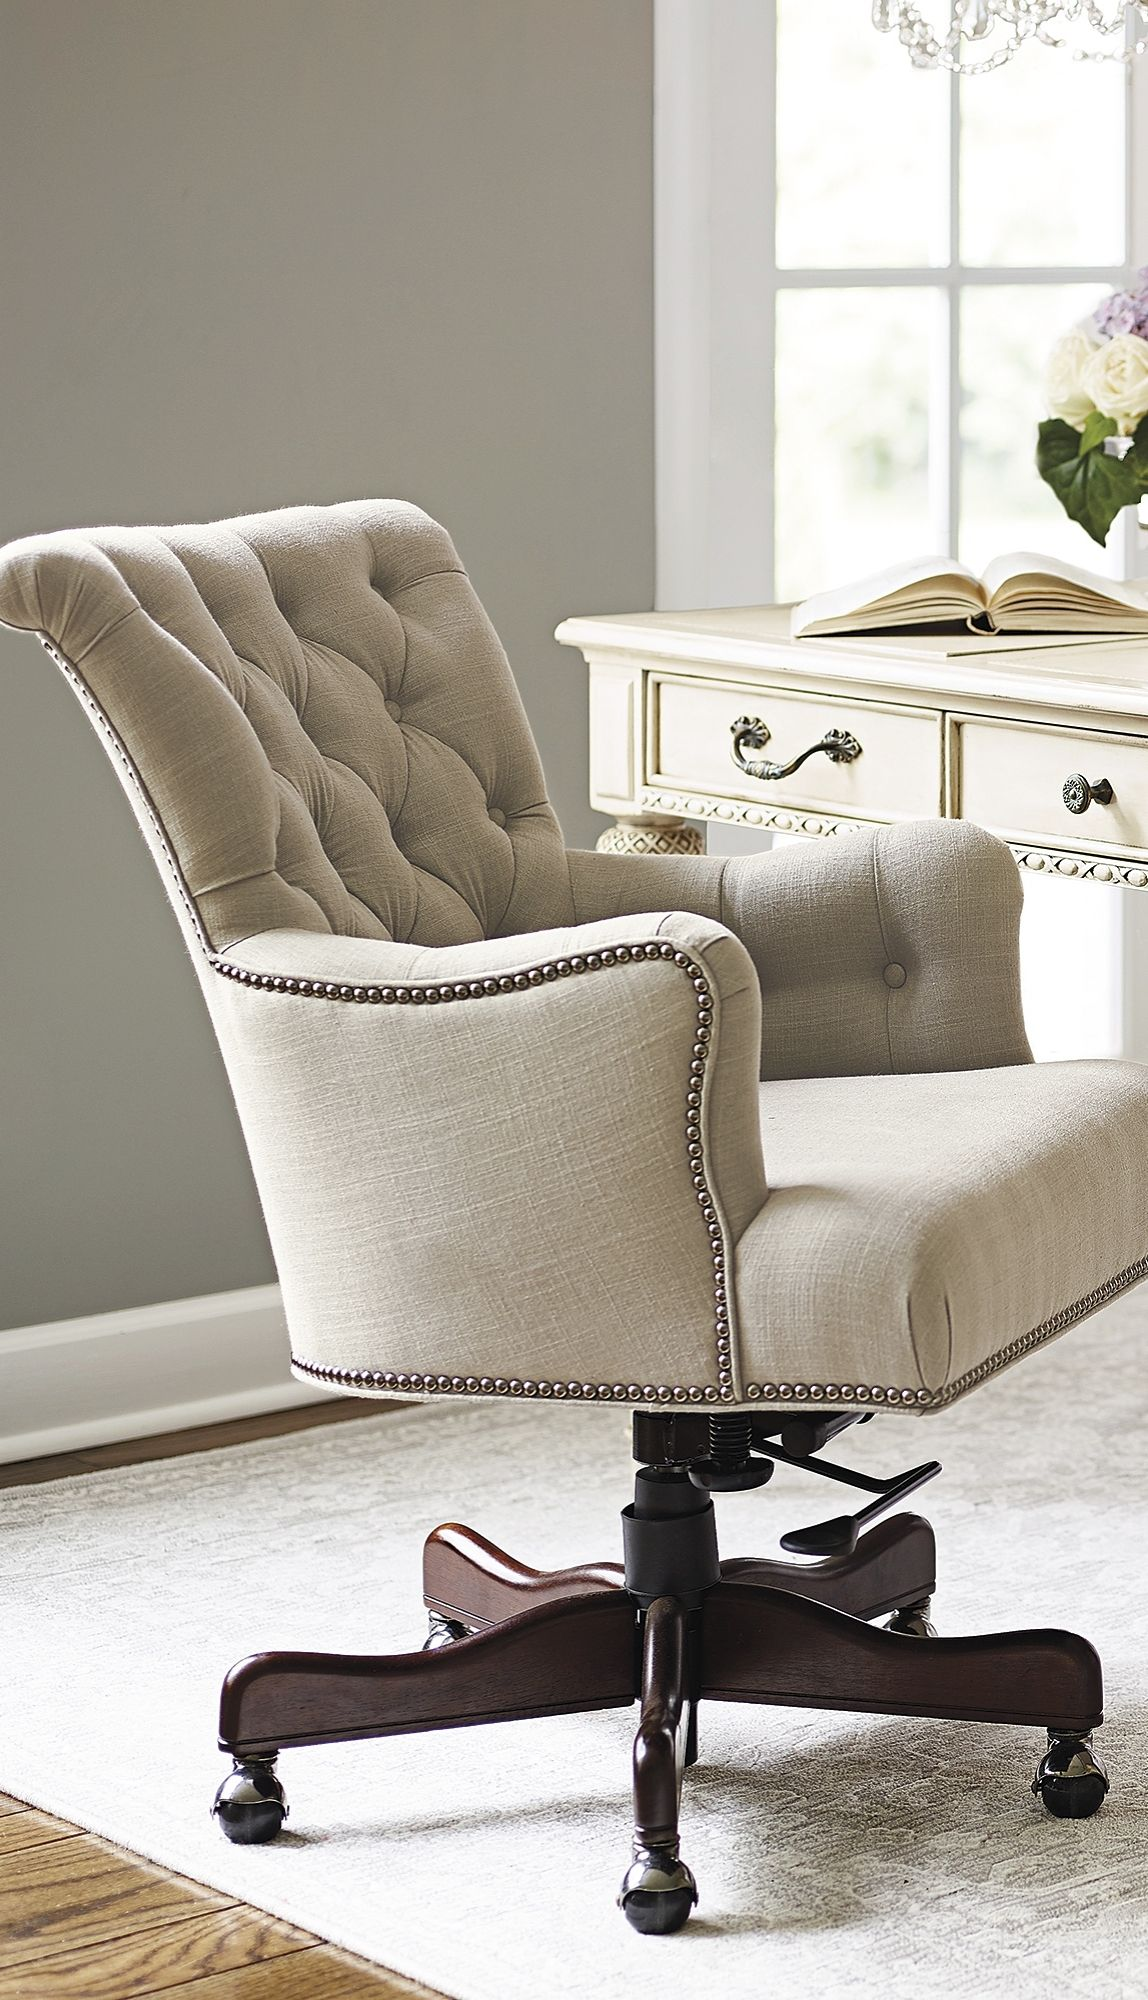 small resolution of button tufted linen accented with silver nailhead trim defines the elegant averly desk chair